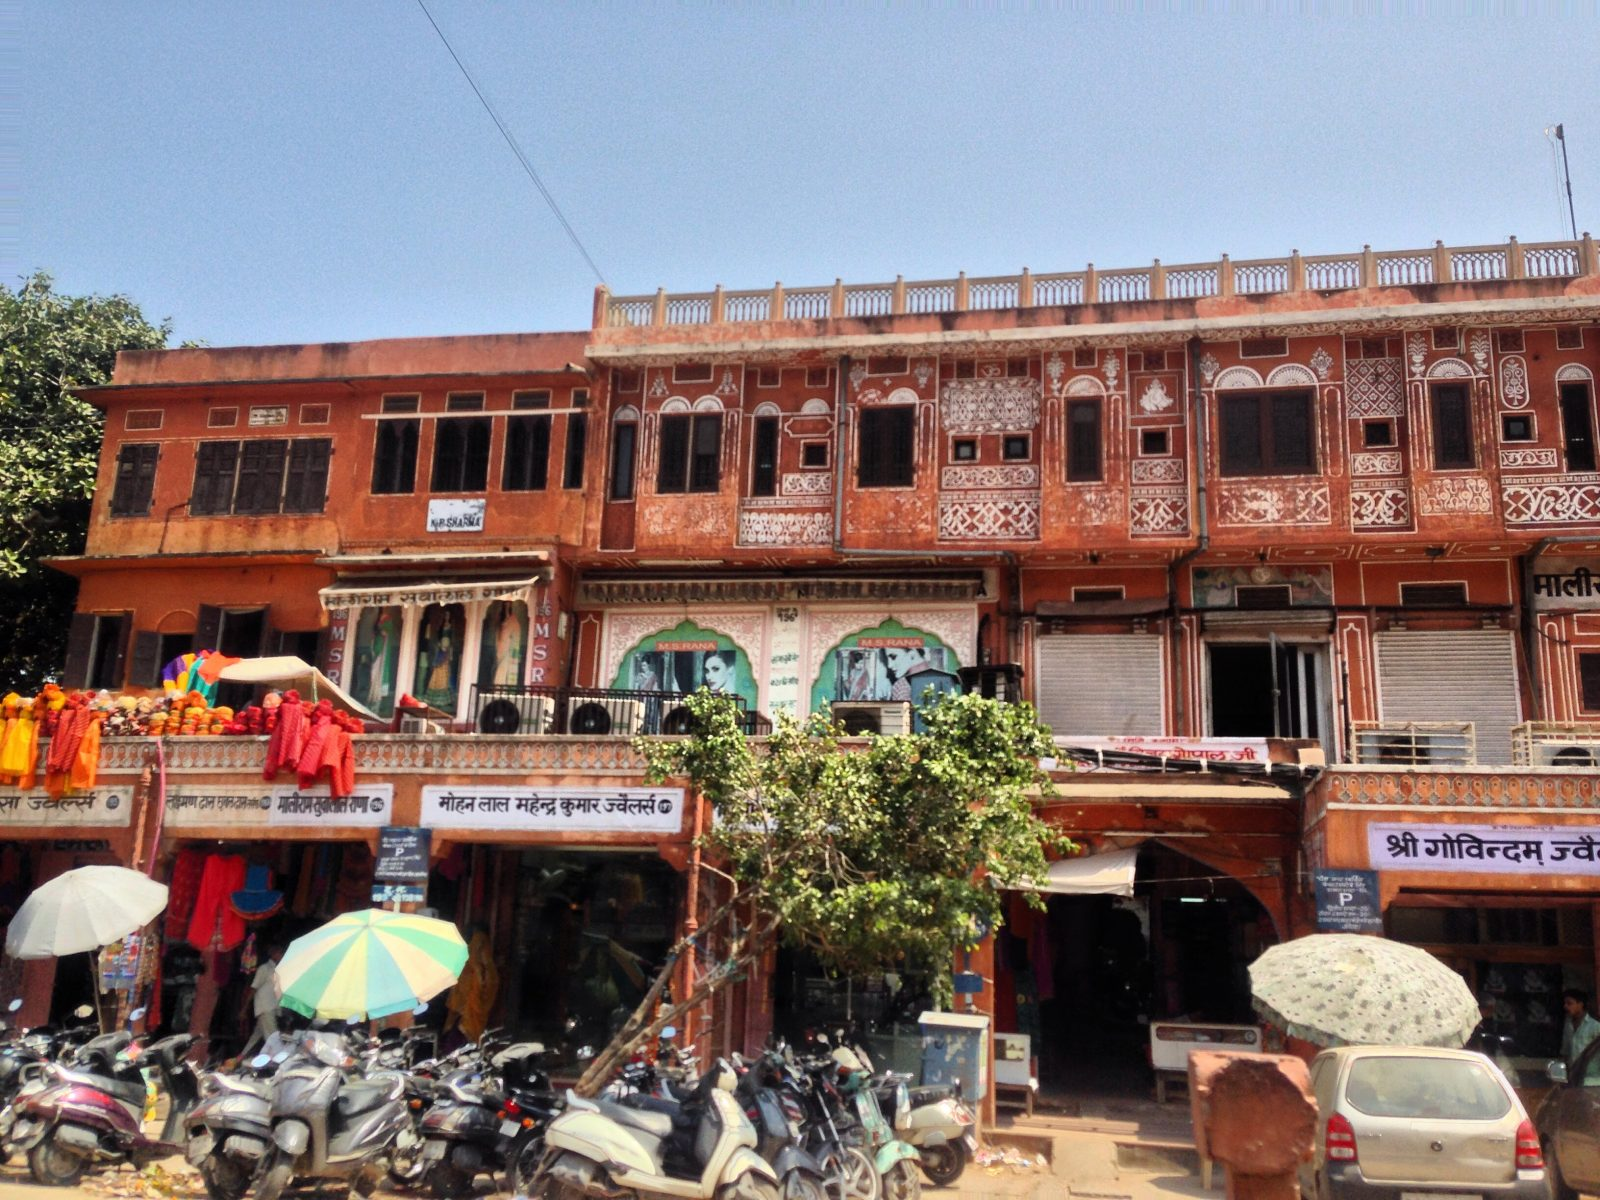 2 Days in the Pink City of Jaipur